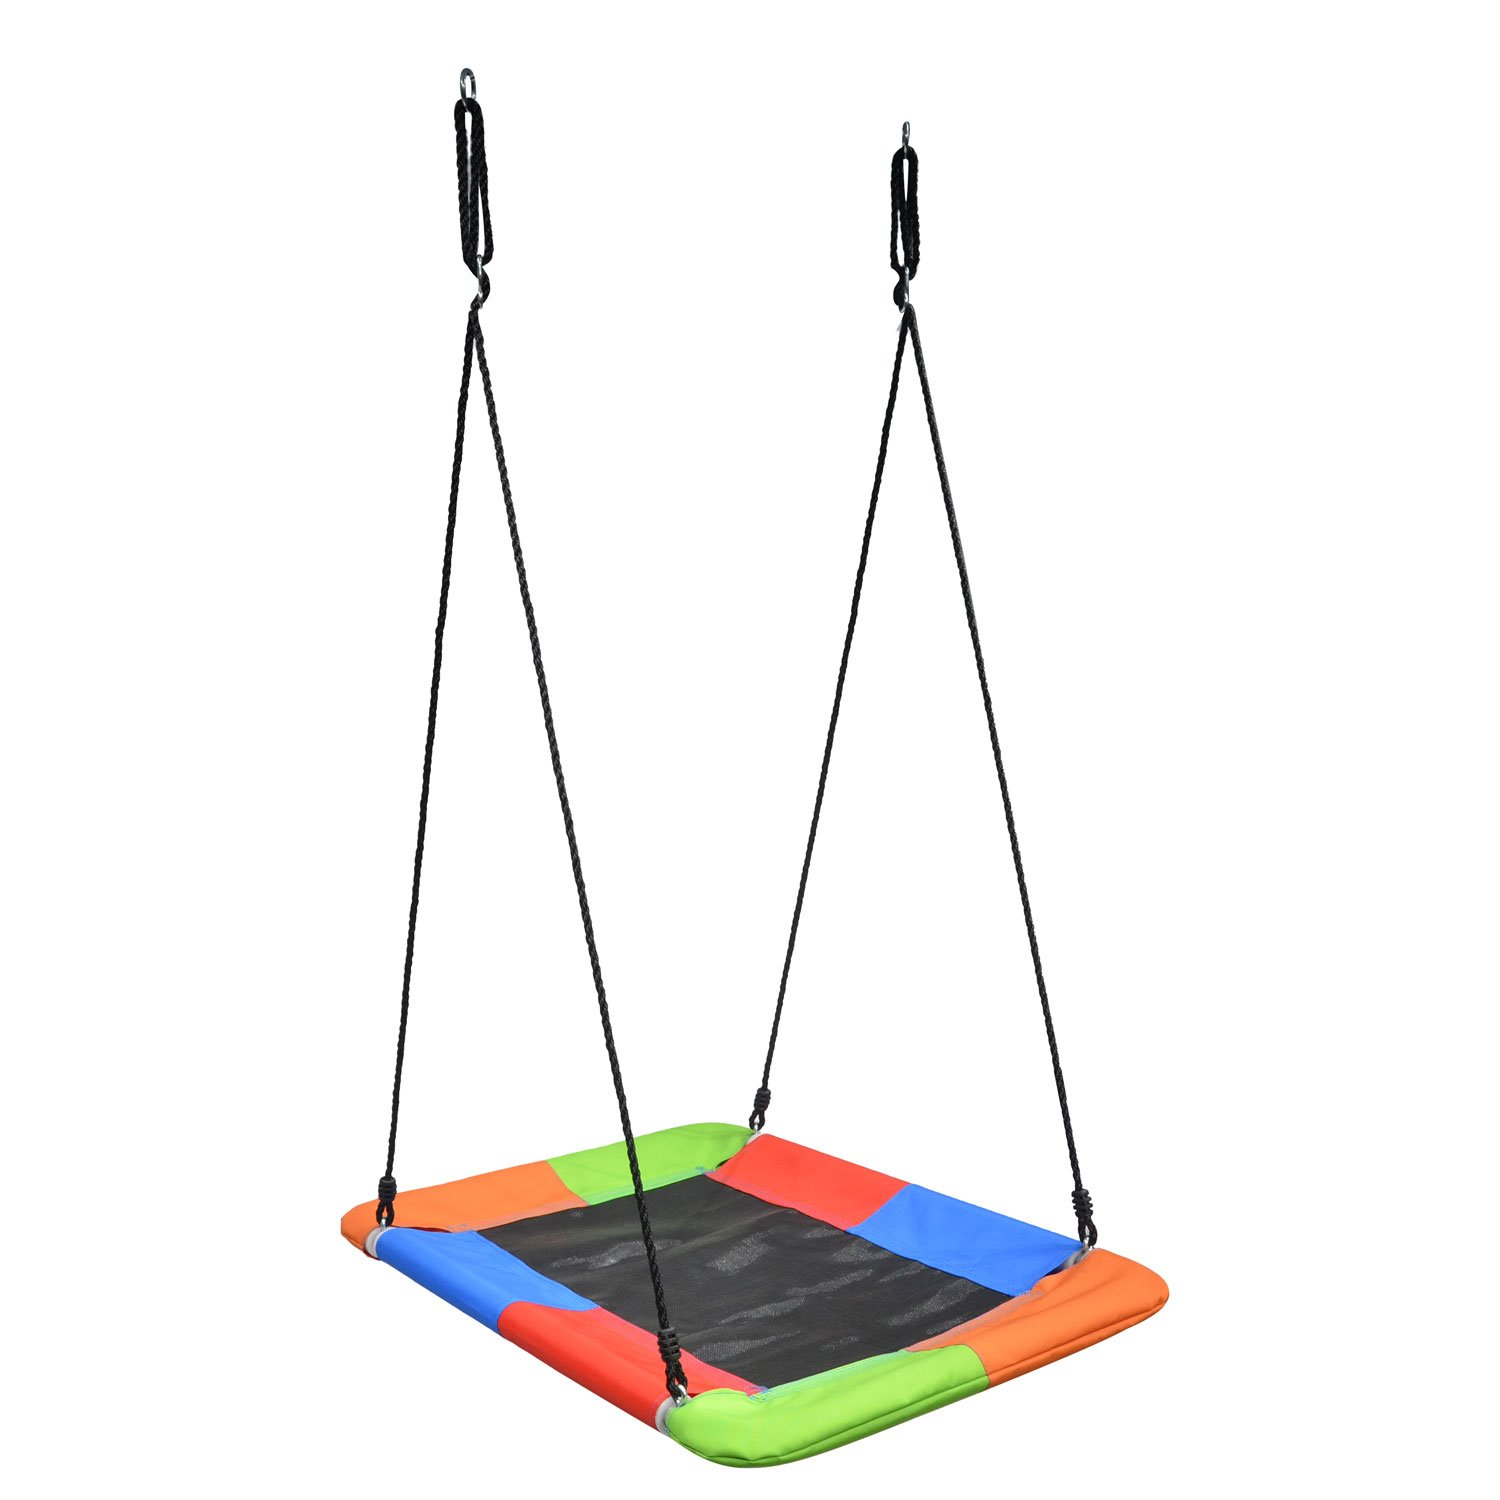 Swinging Monkey Giant Mat Platform Swing in Vibrant Rainbow | 40'' x 30'' | 400 lb Weight Capacity | Waterproof Fabric | Reinforced Steel Frame | No Hassle Adjustable Ropes| Easy Install